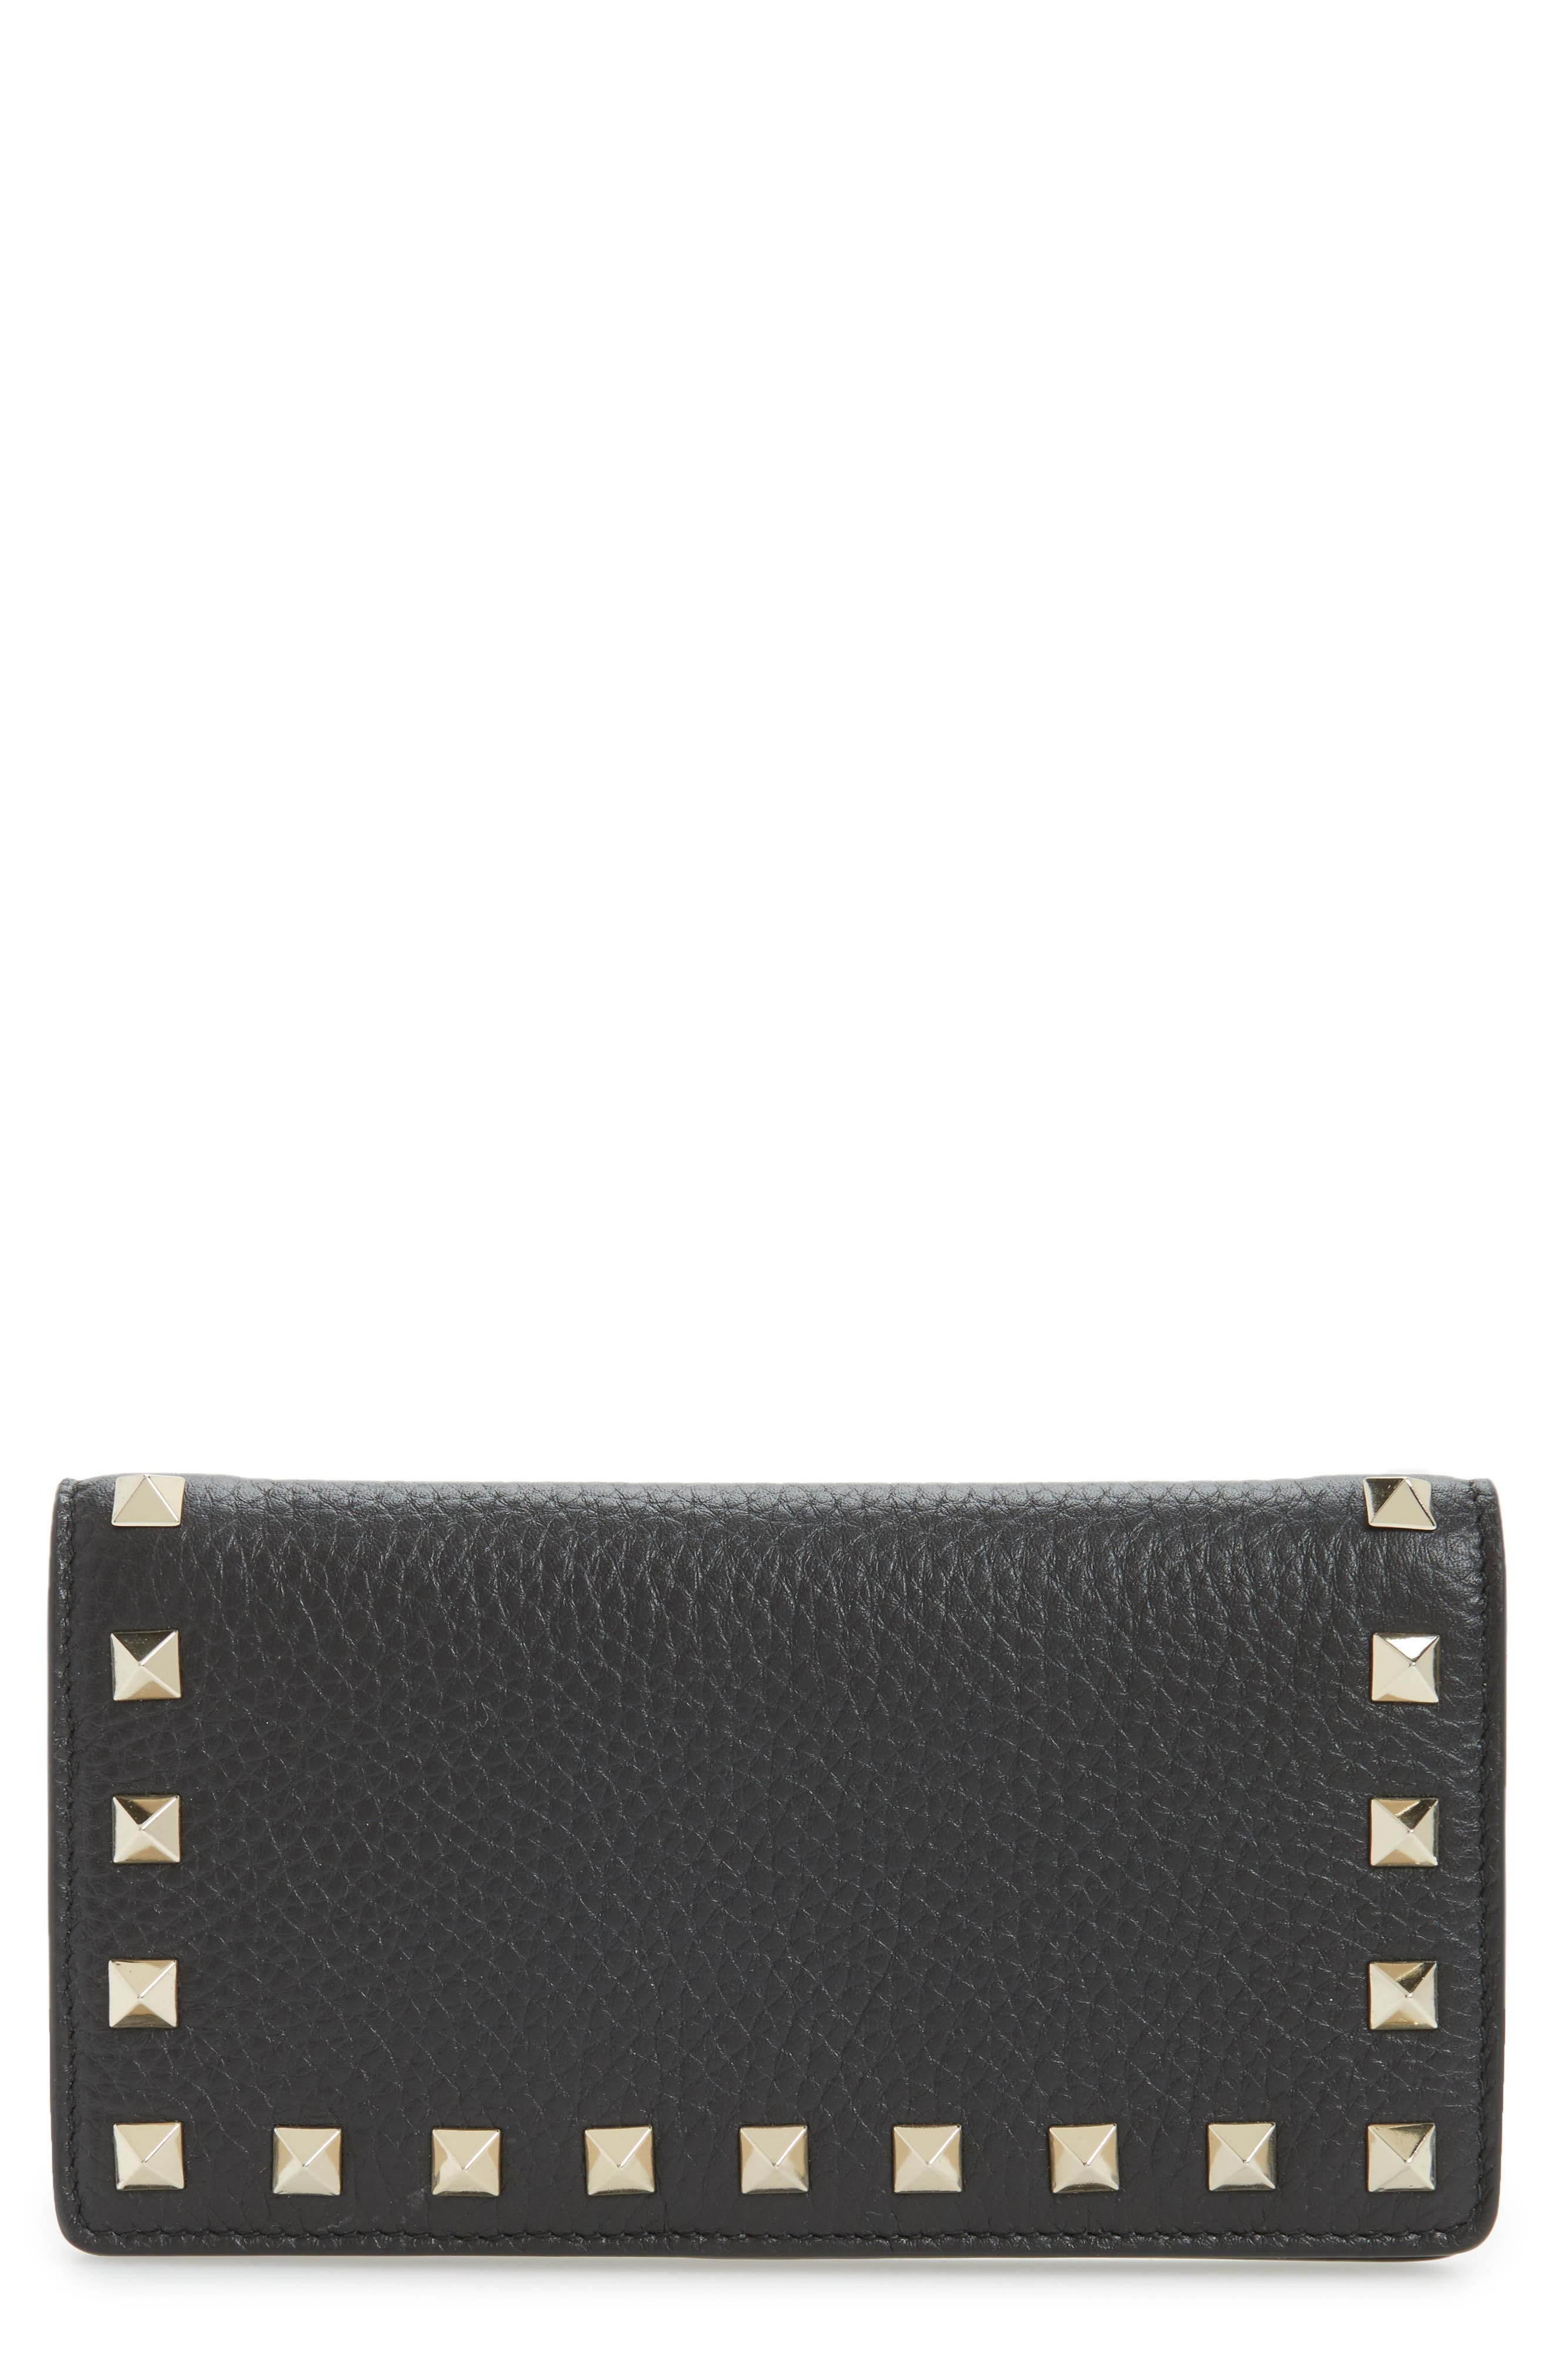 Rockstud Calfskin Leather Wallet,                         Main,                         color, Nero